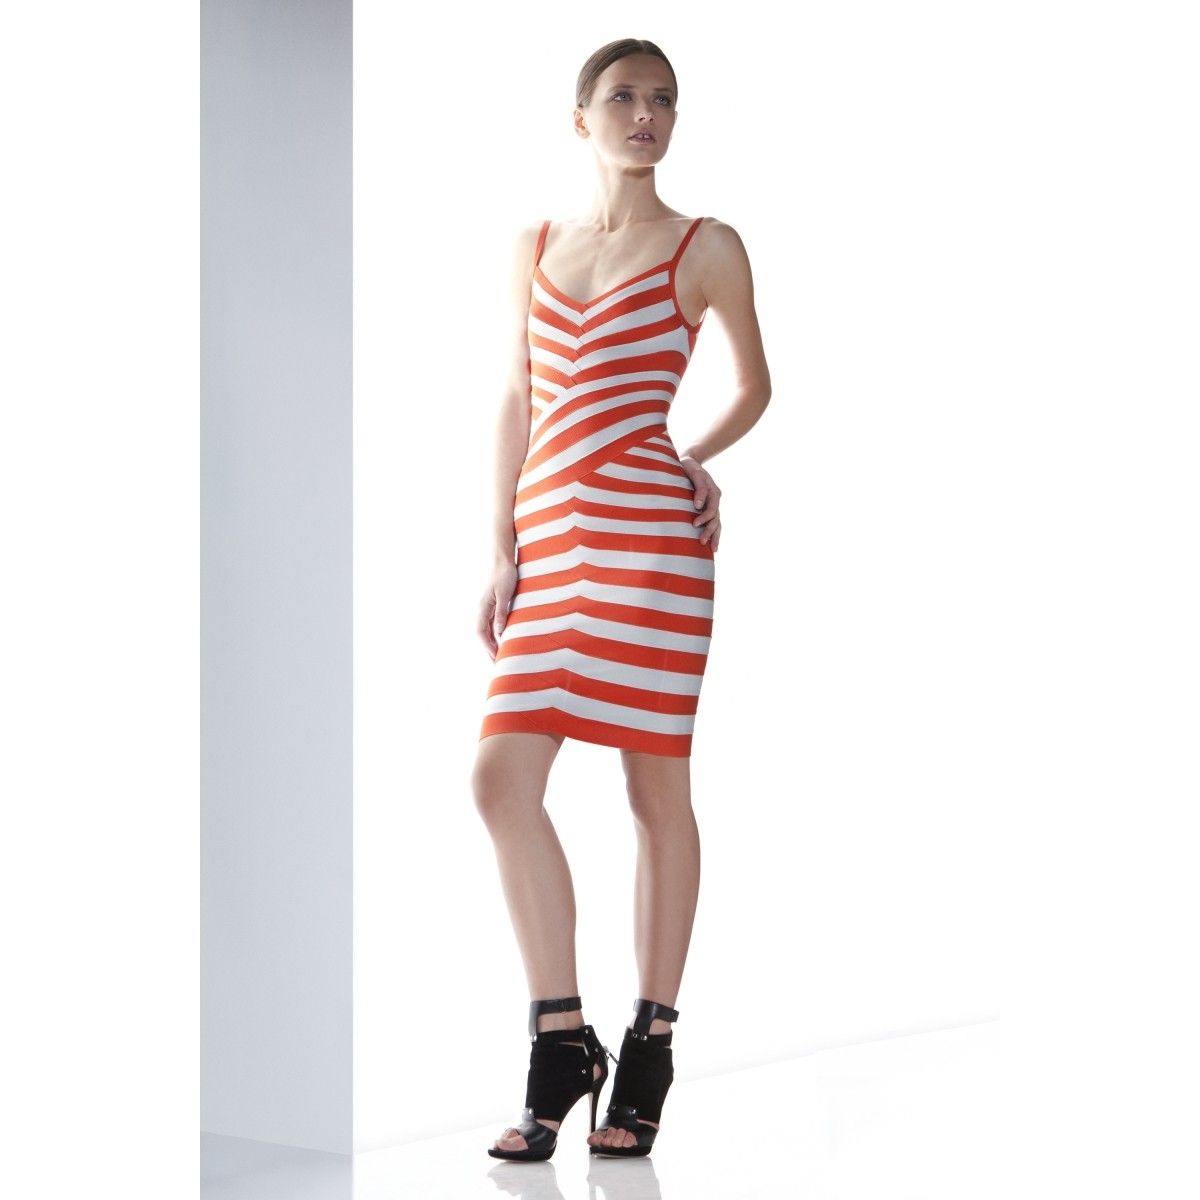 9b57ee4e0f0c3 Reviews : Herve Leger Online Store,Herve Leger Outlet.page-48